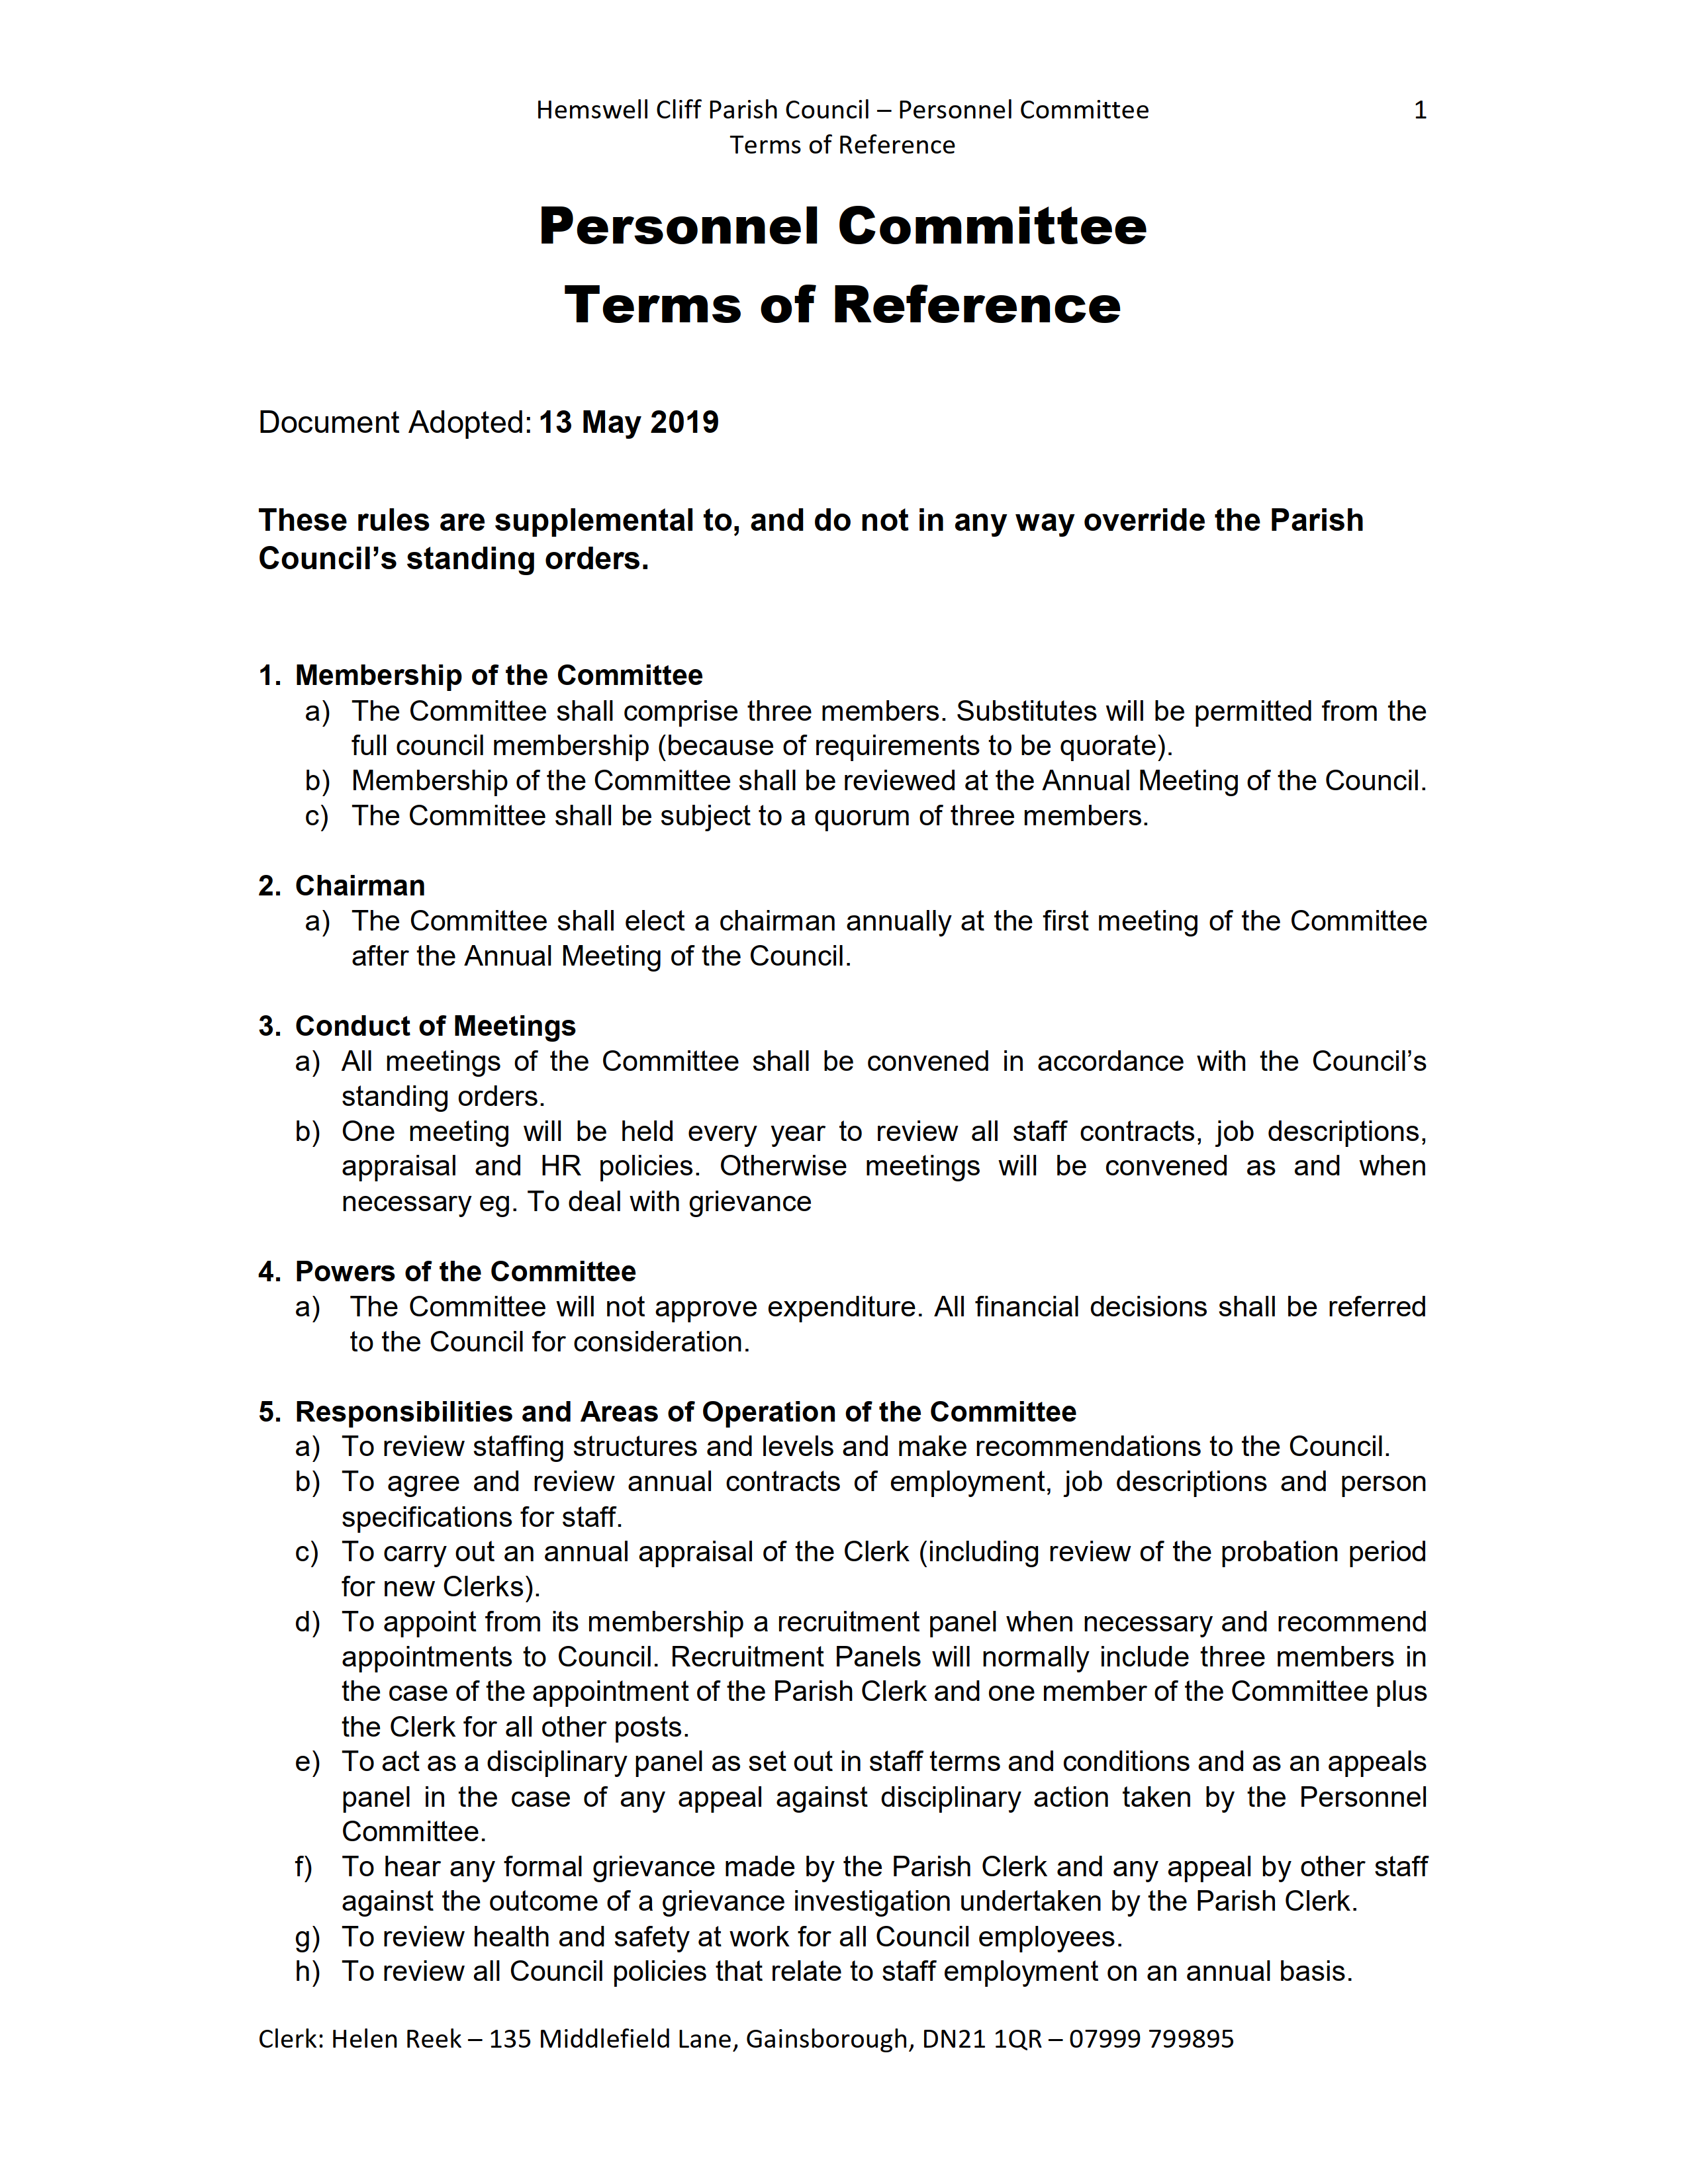 1920HCPC._Personnel_Committee_Terms_of_Reference1.png